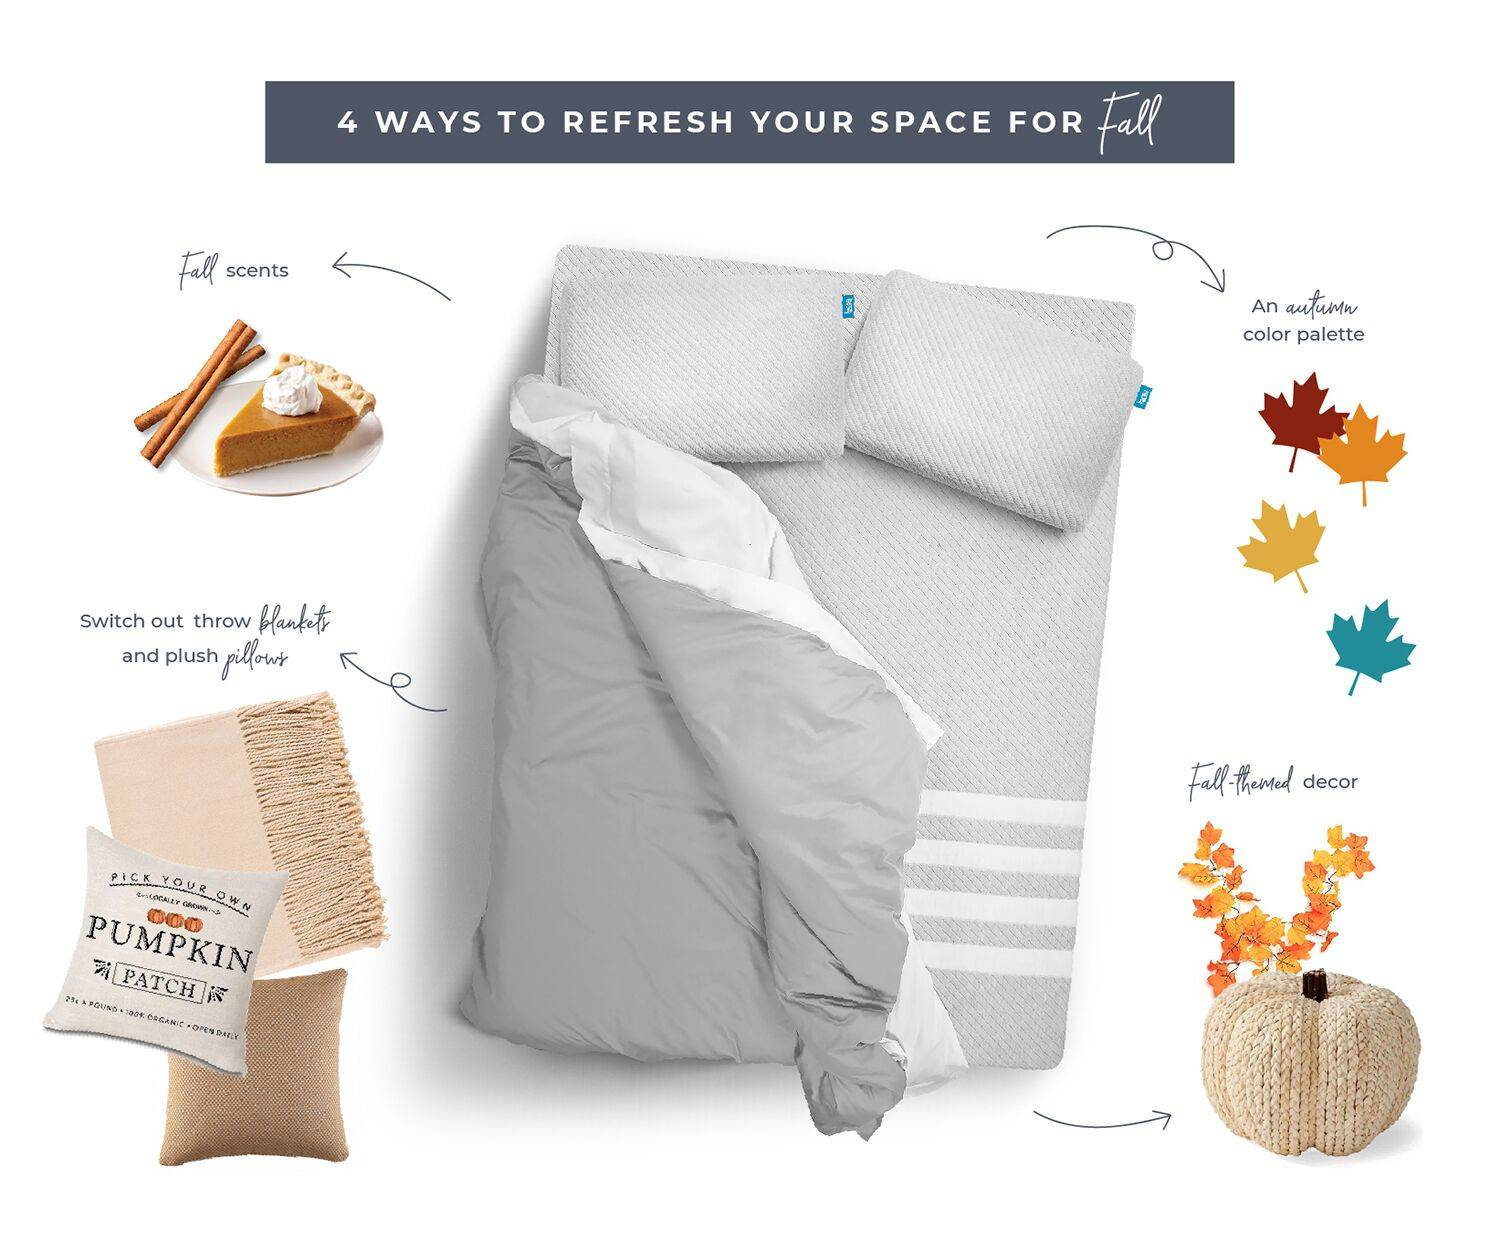 4 ways to refresh your space for Fall